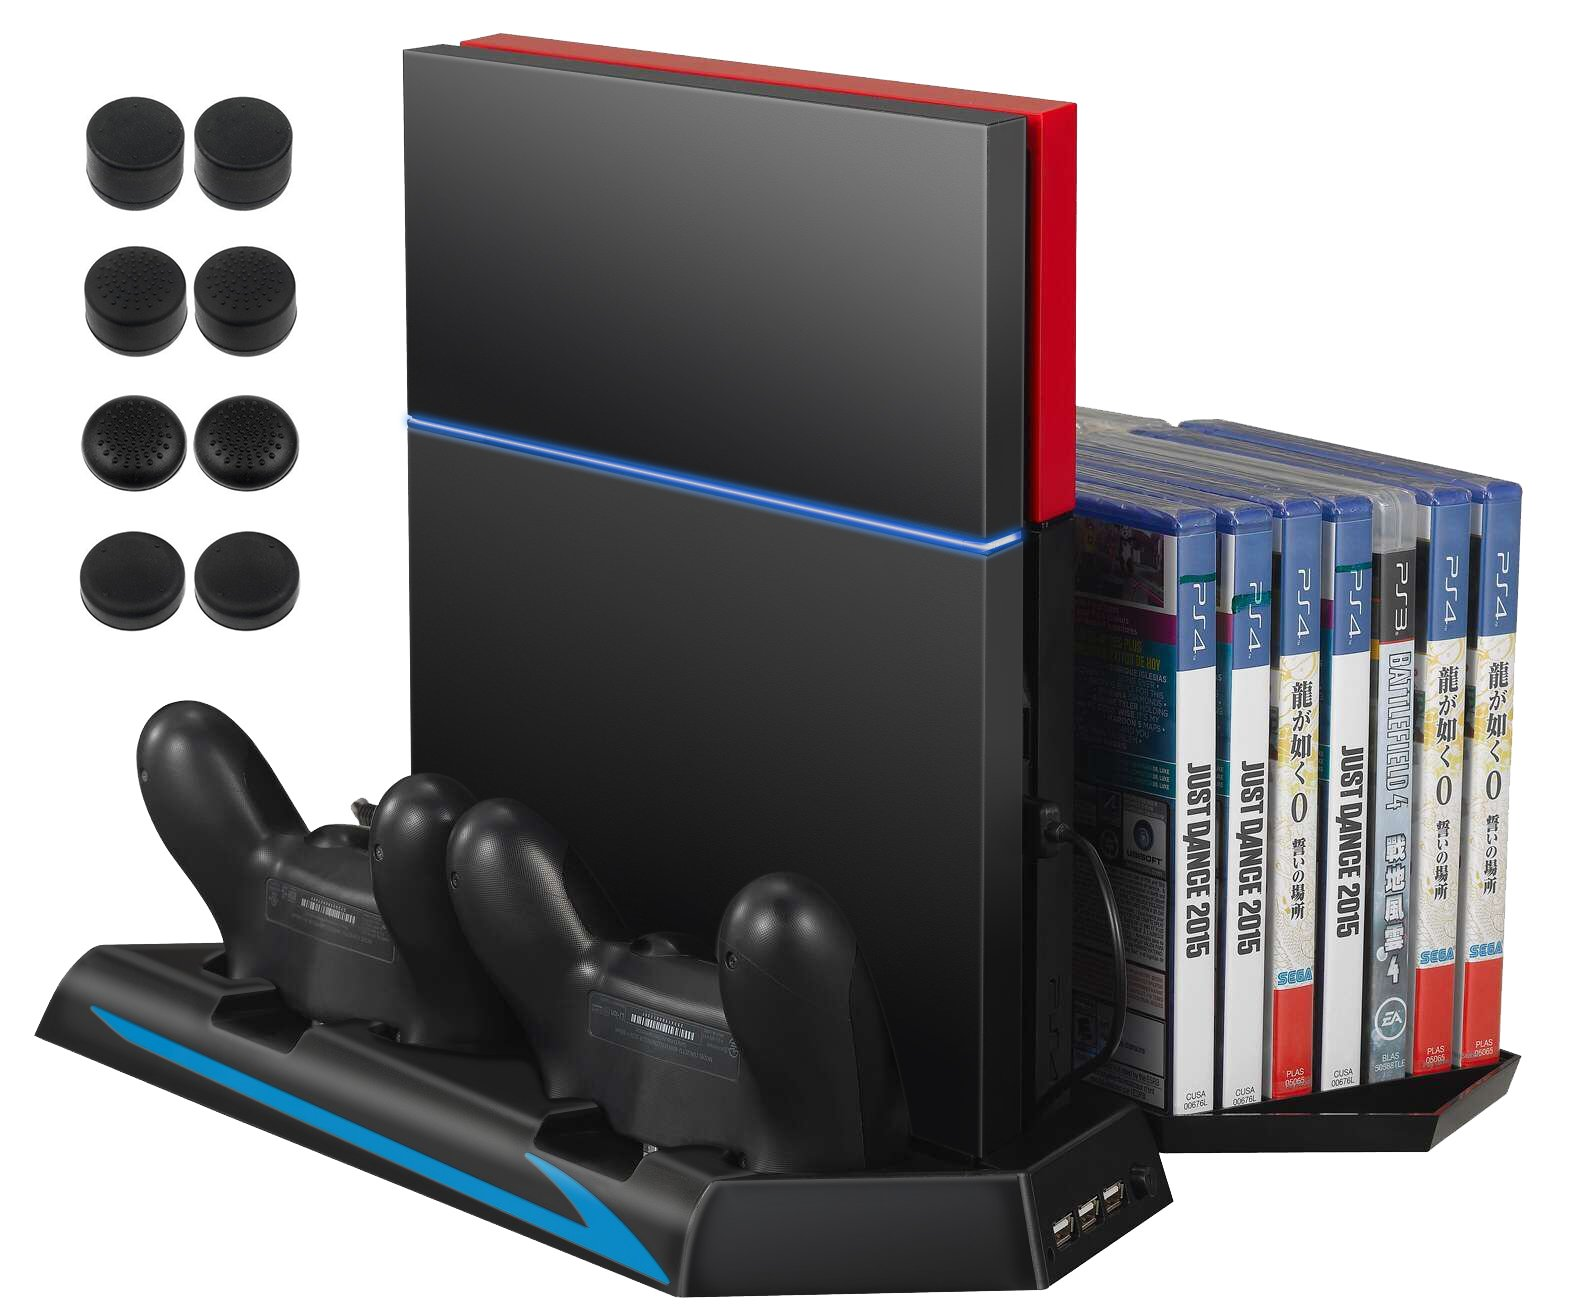 AMIR PS4 Vertical Stand Cooling Fan, Cooler Charging Station with 2 Controller Charging Port + 14 Game Disc Storage + 3 HUB Ports + 8 Controller Thump Grips ( Not for Pro or Slim) by AMIR